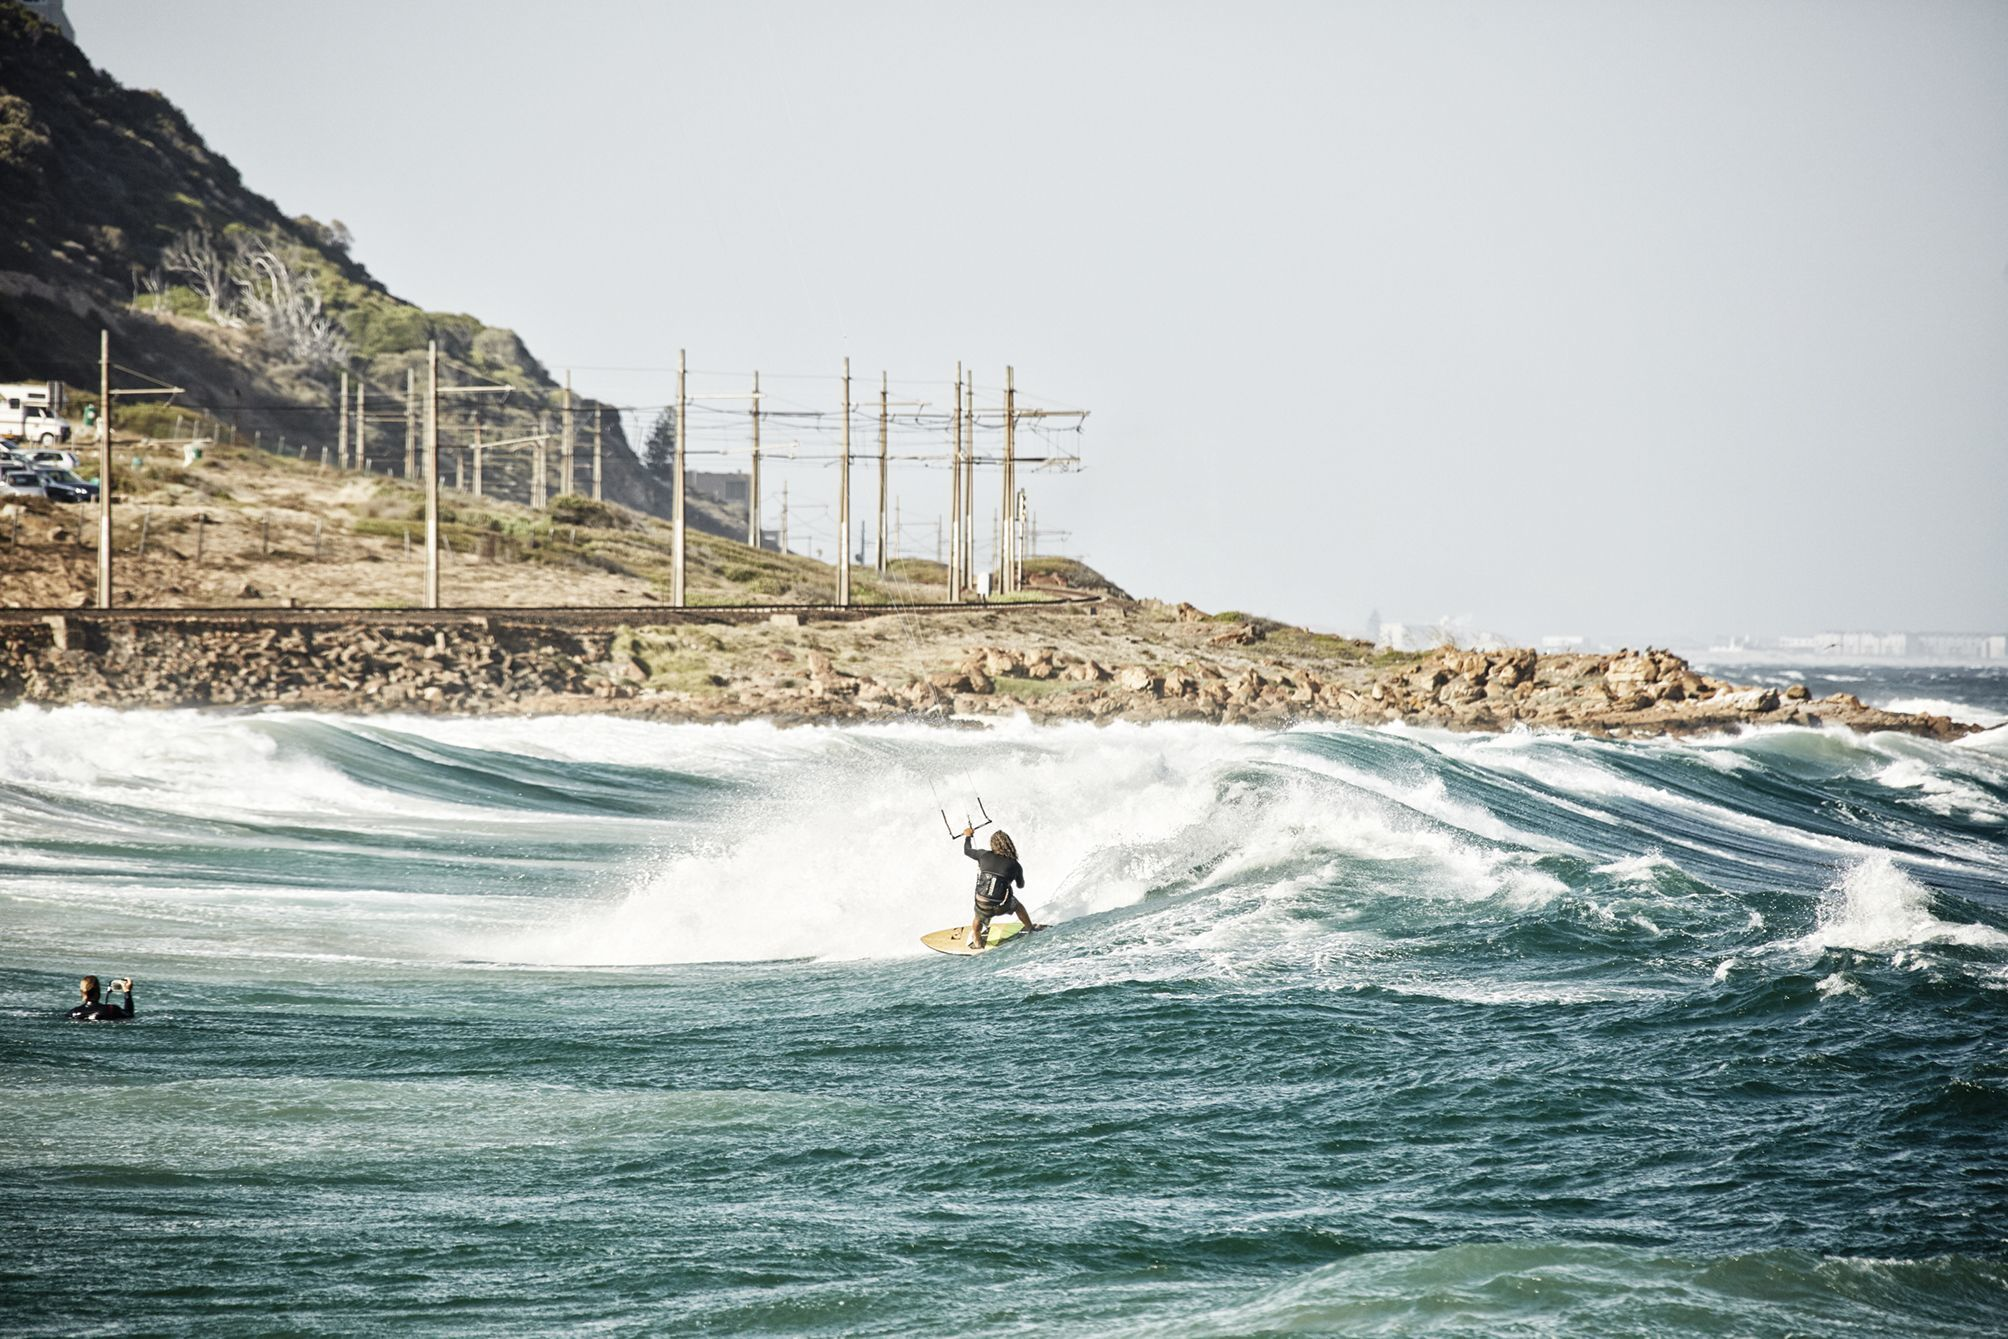 Kiter riding a wave at glencairn beach in cape town